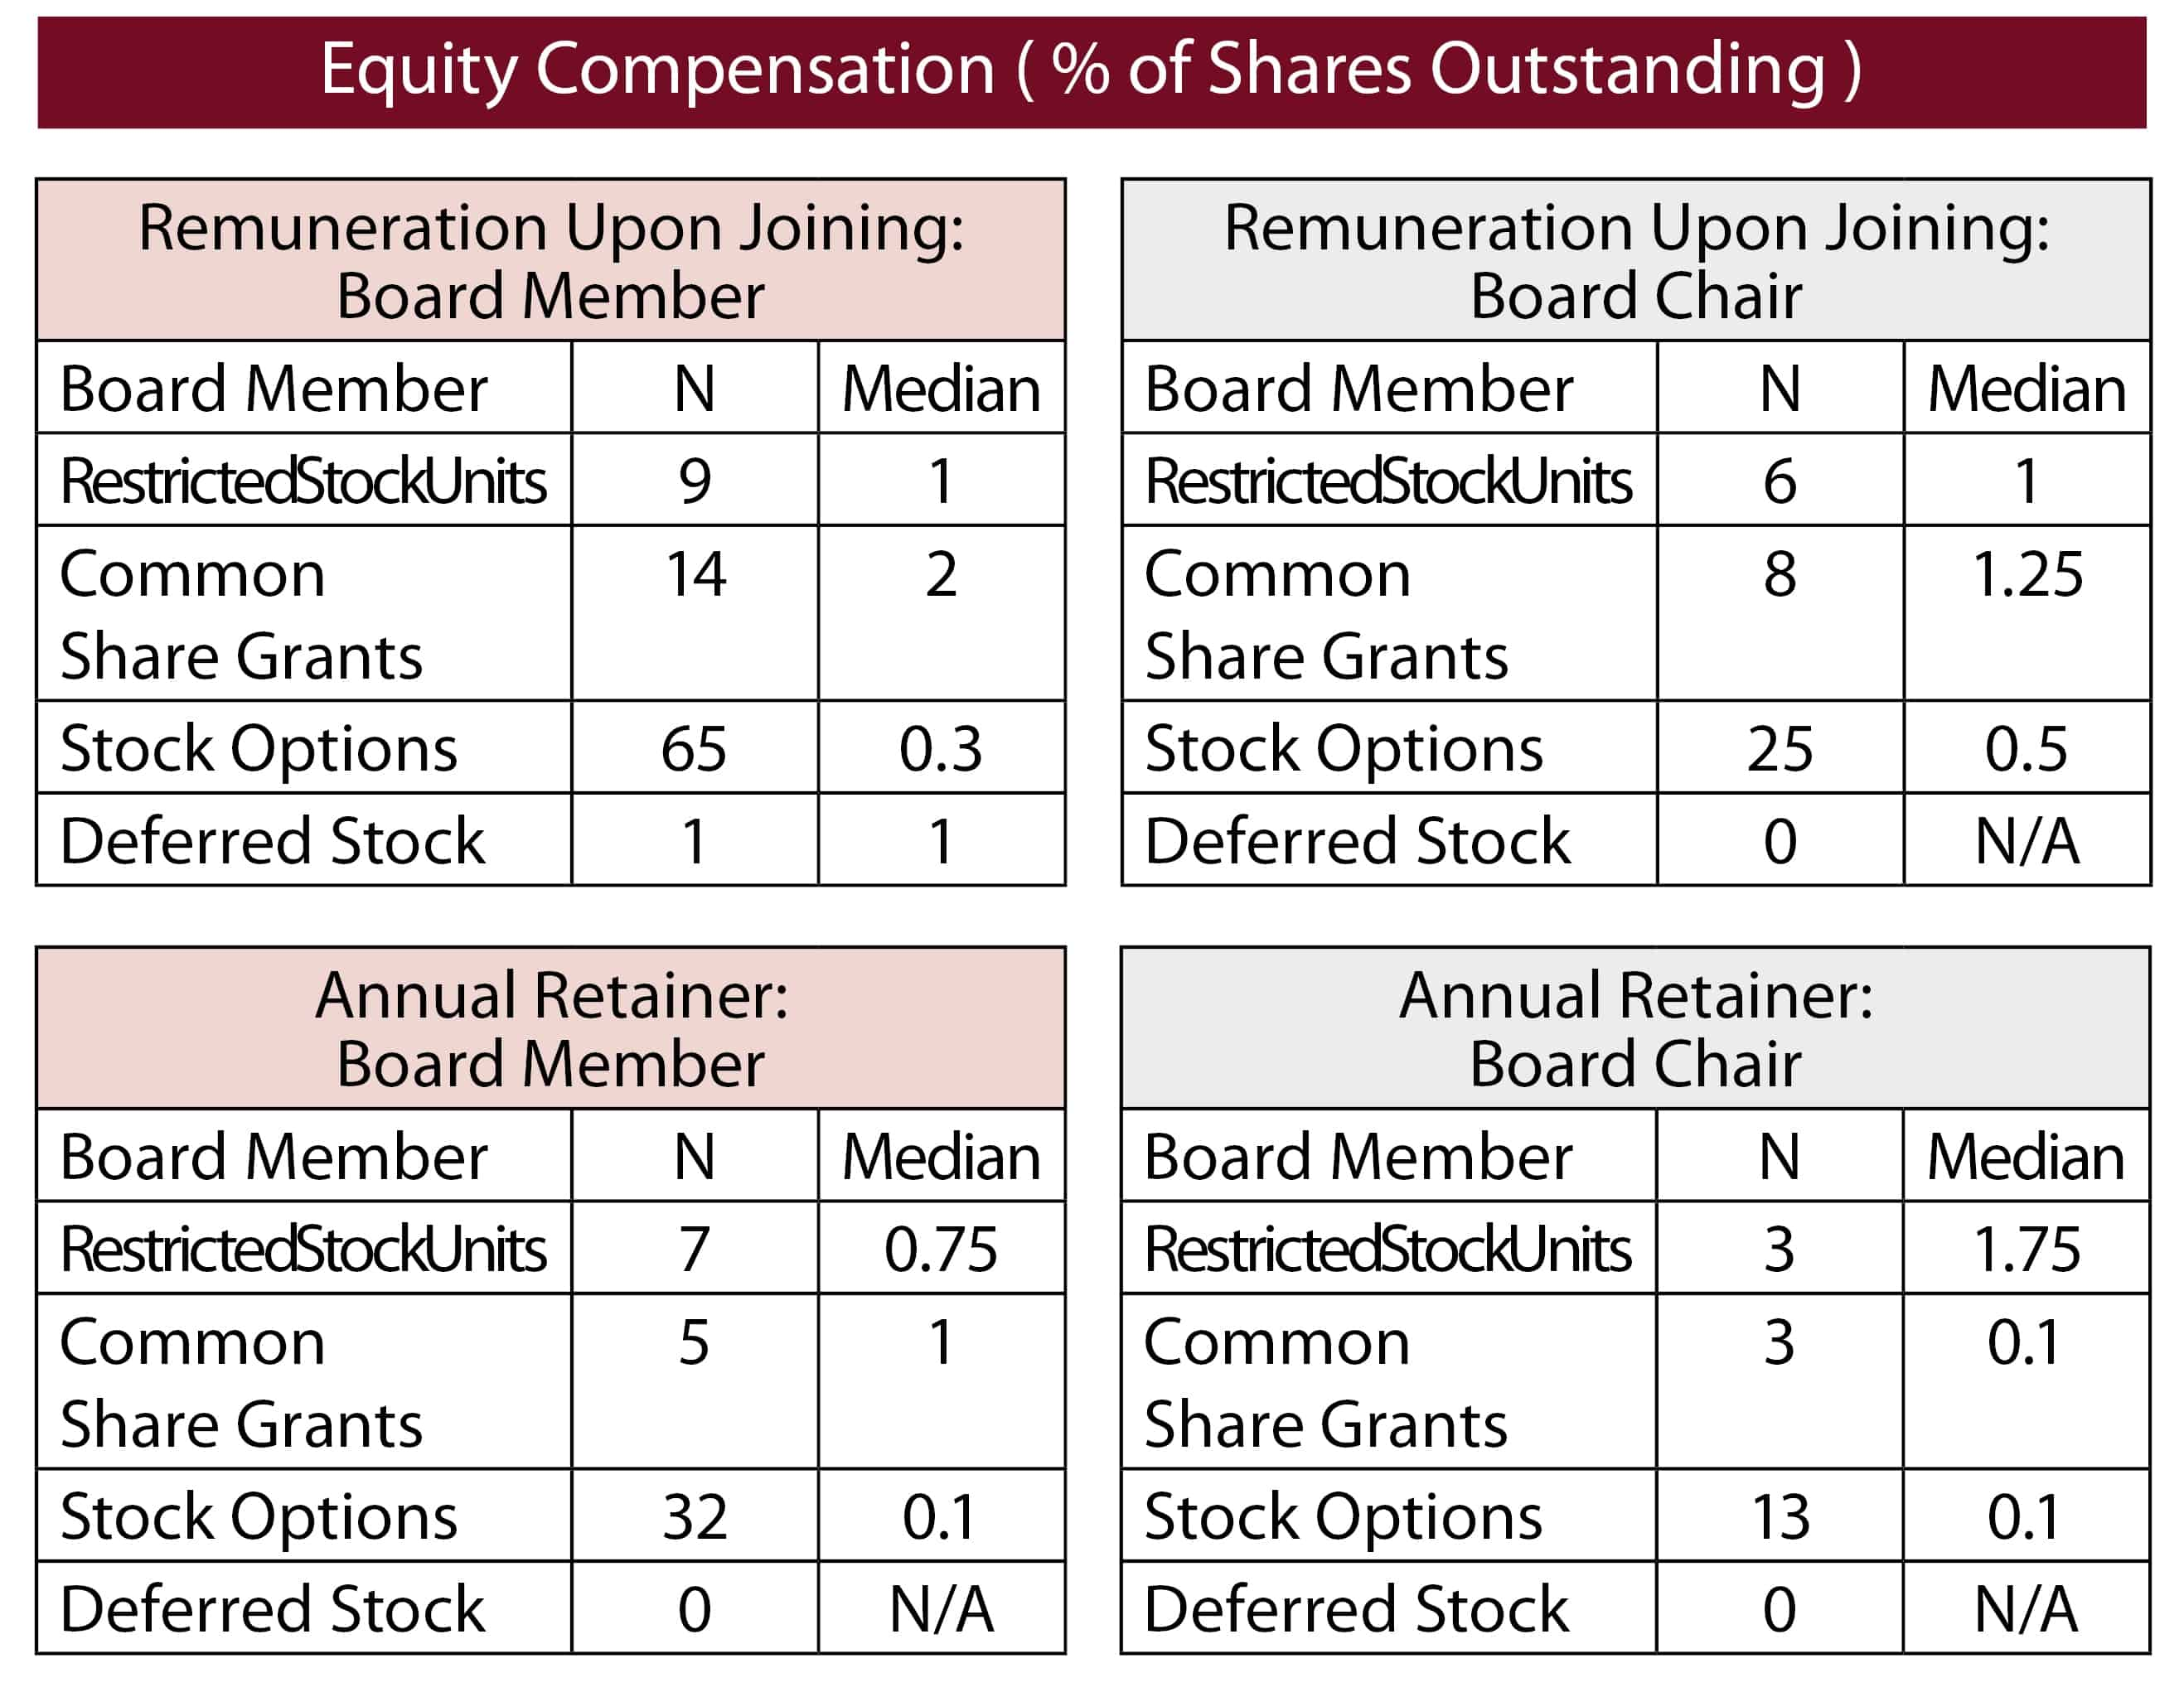 Percent of Equity Compensation